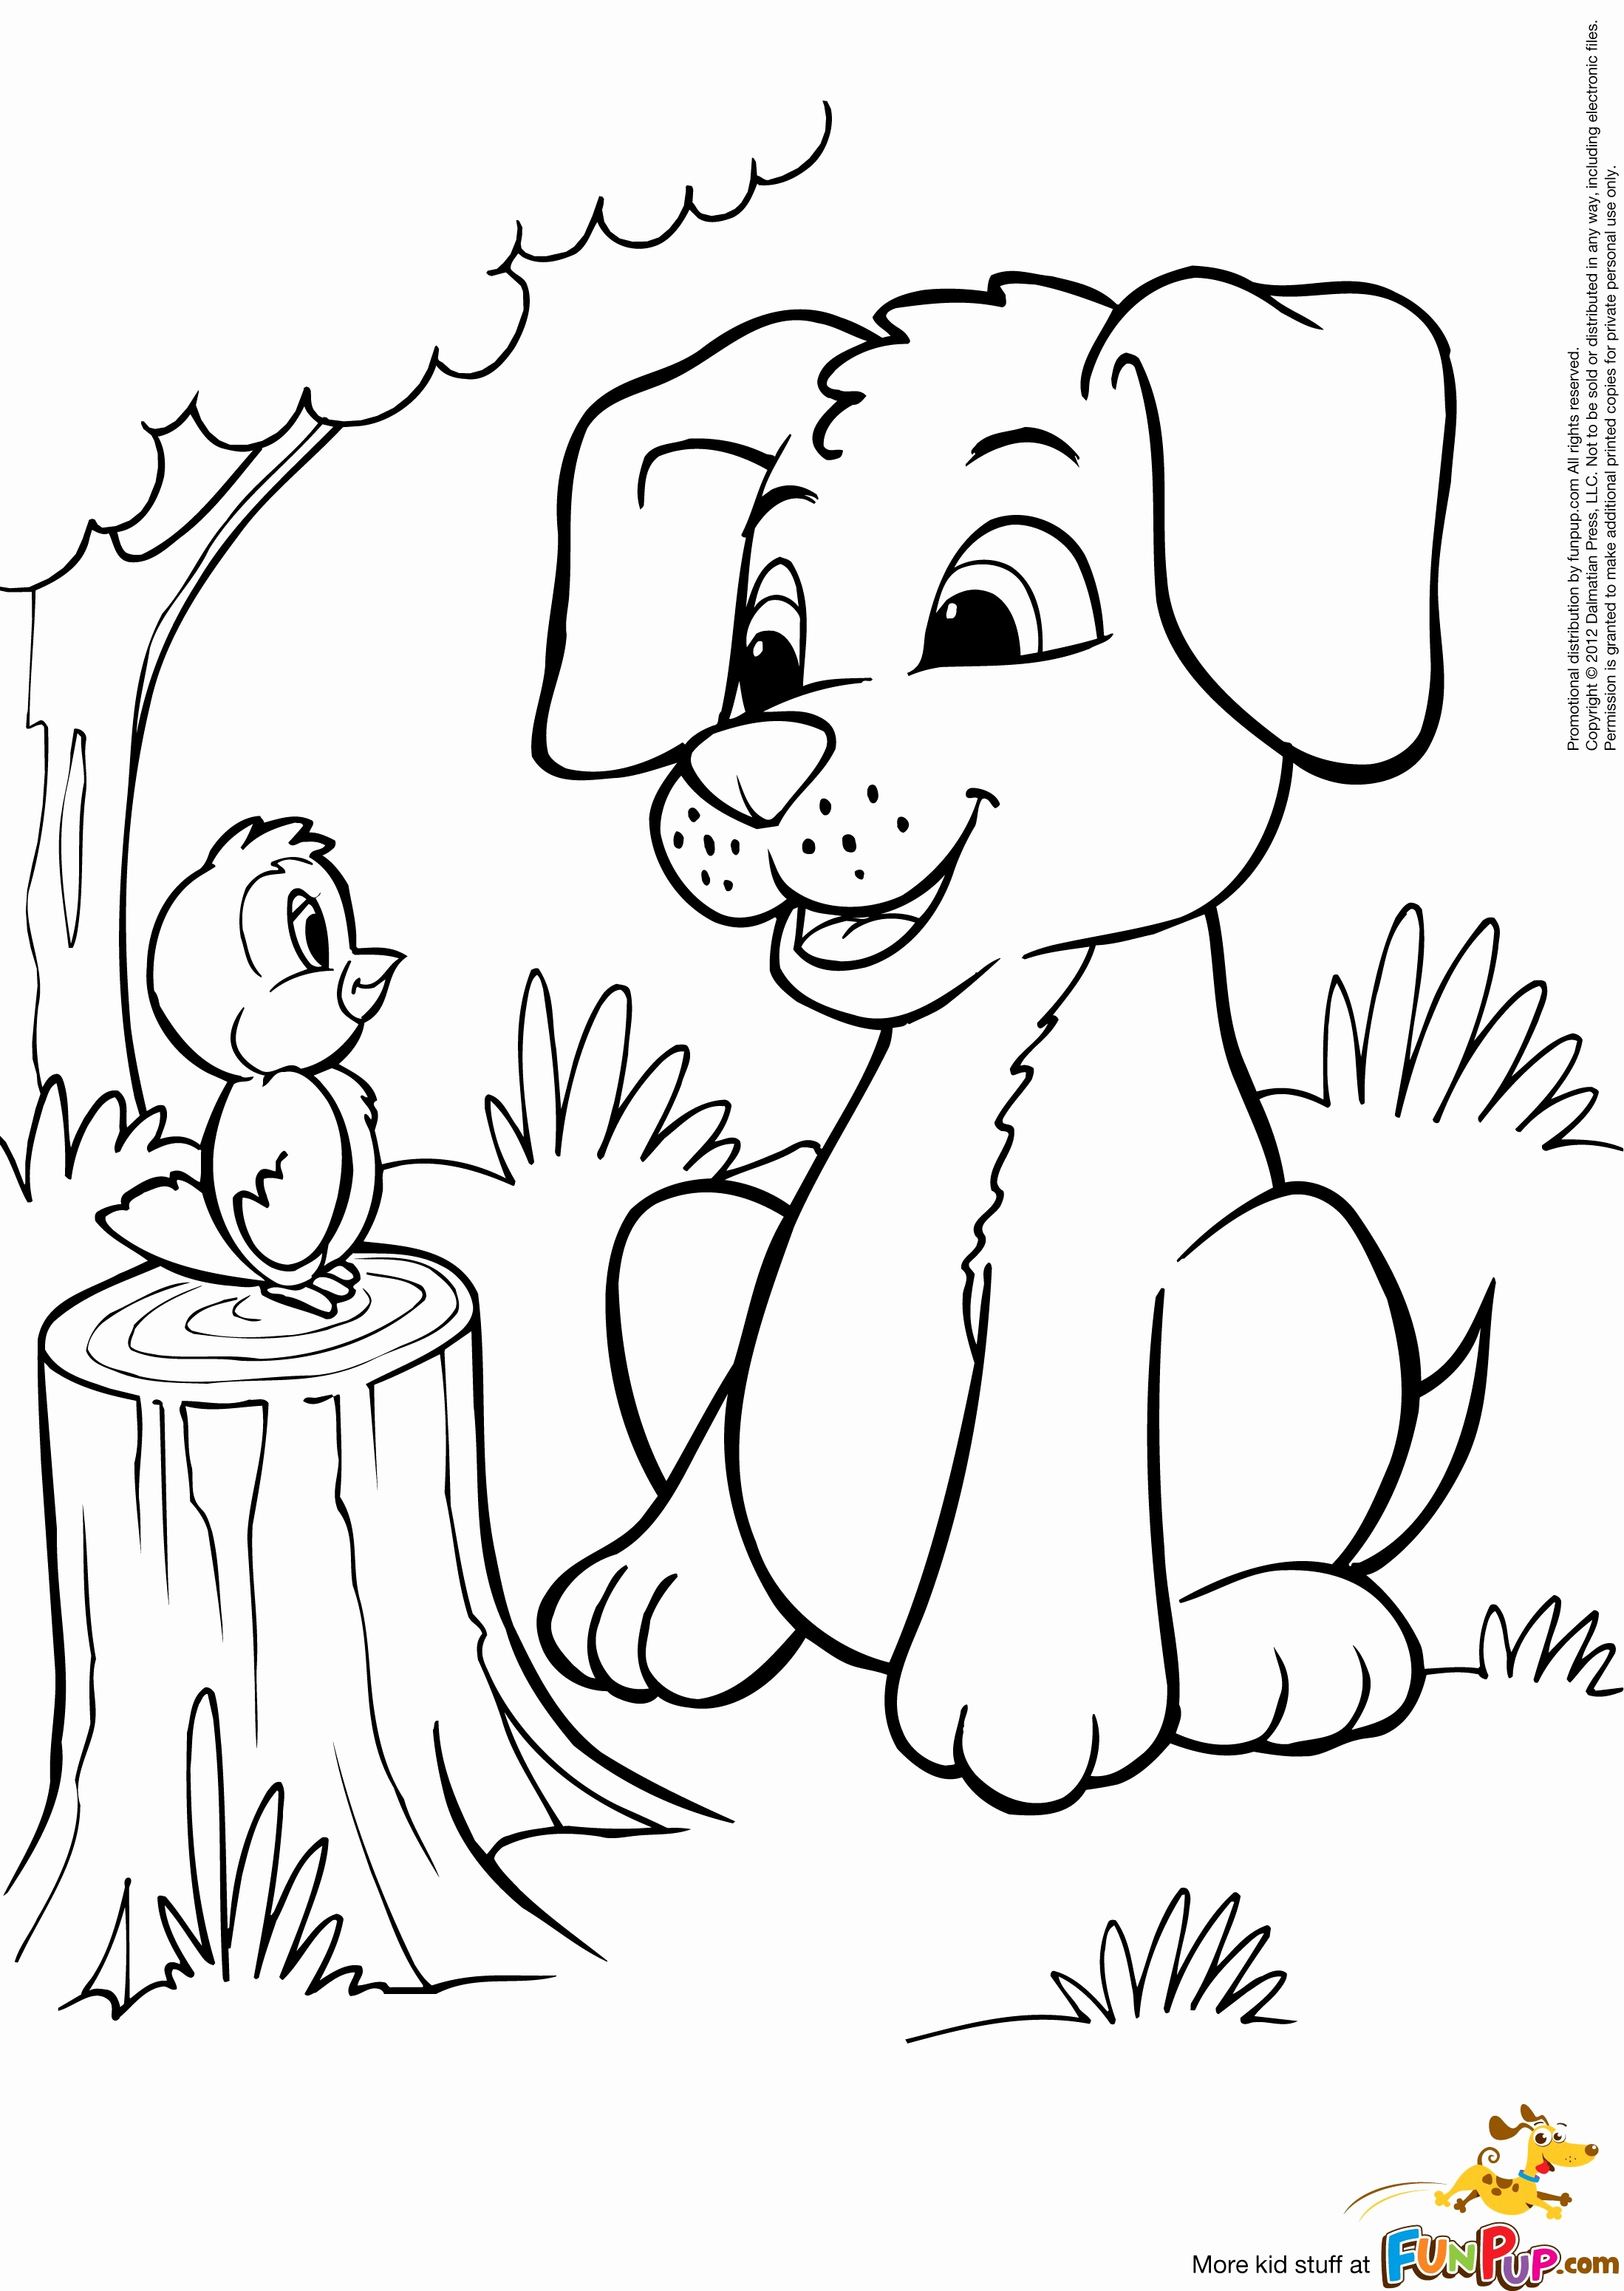 2198x3101 Cute Love Coloring Pages Elegant Hard Coloring Pages Coloring